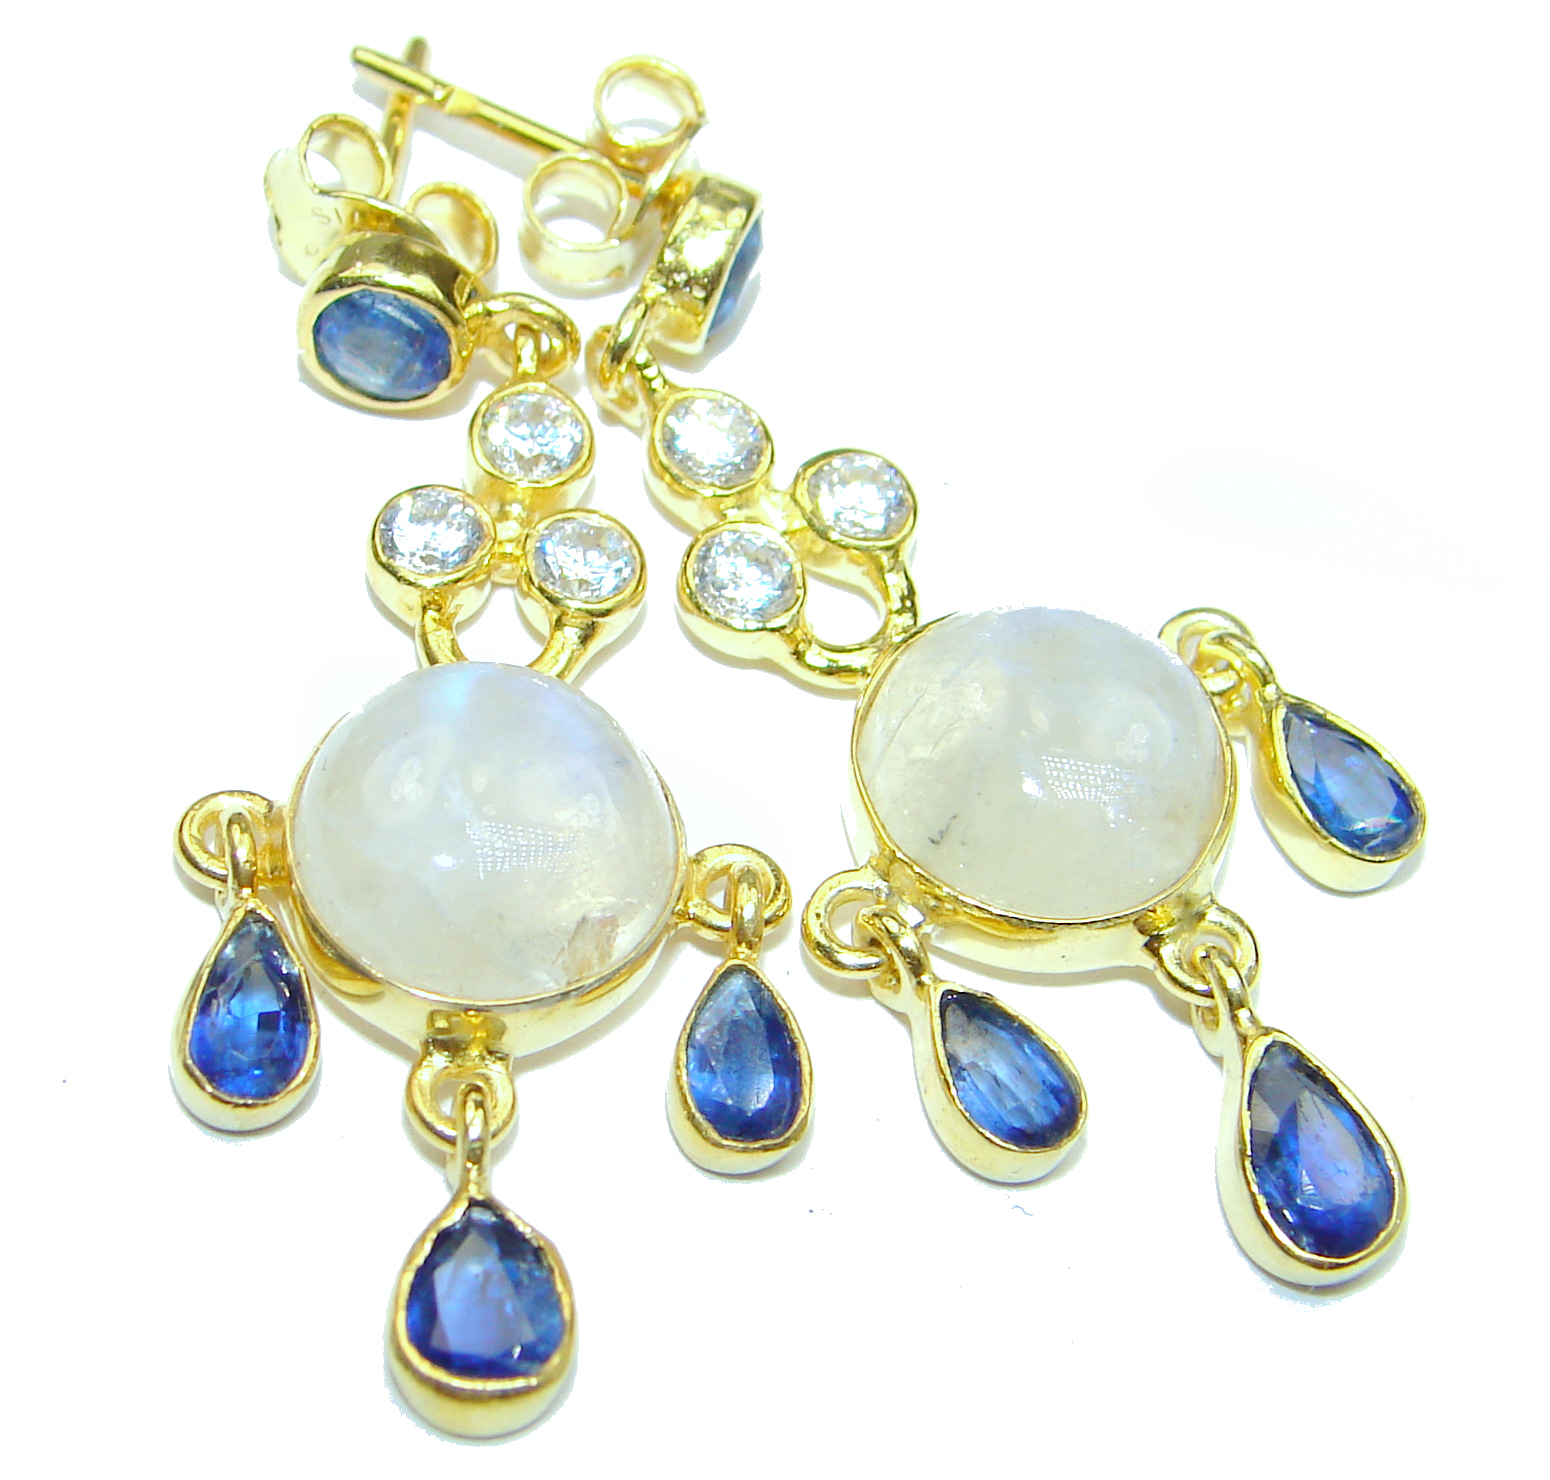 Genuine Fire Moonstone 18K Gold over .925 Sterling Silver handcrafted Earrings